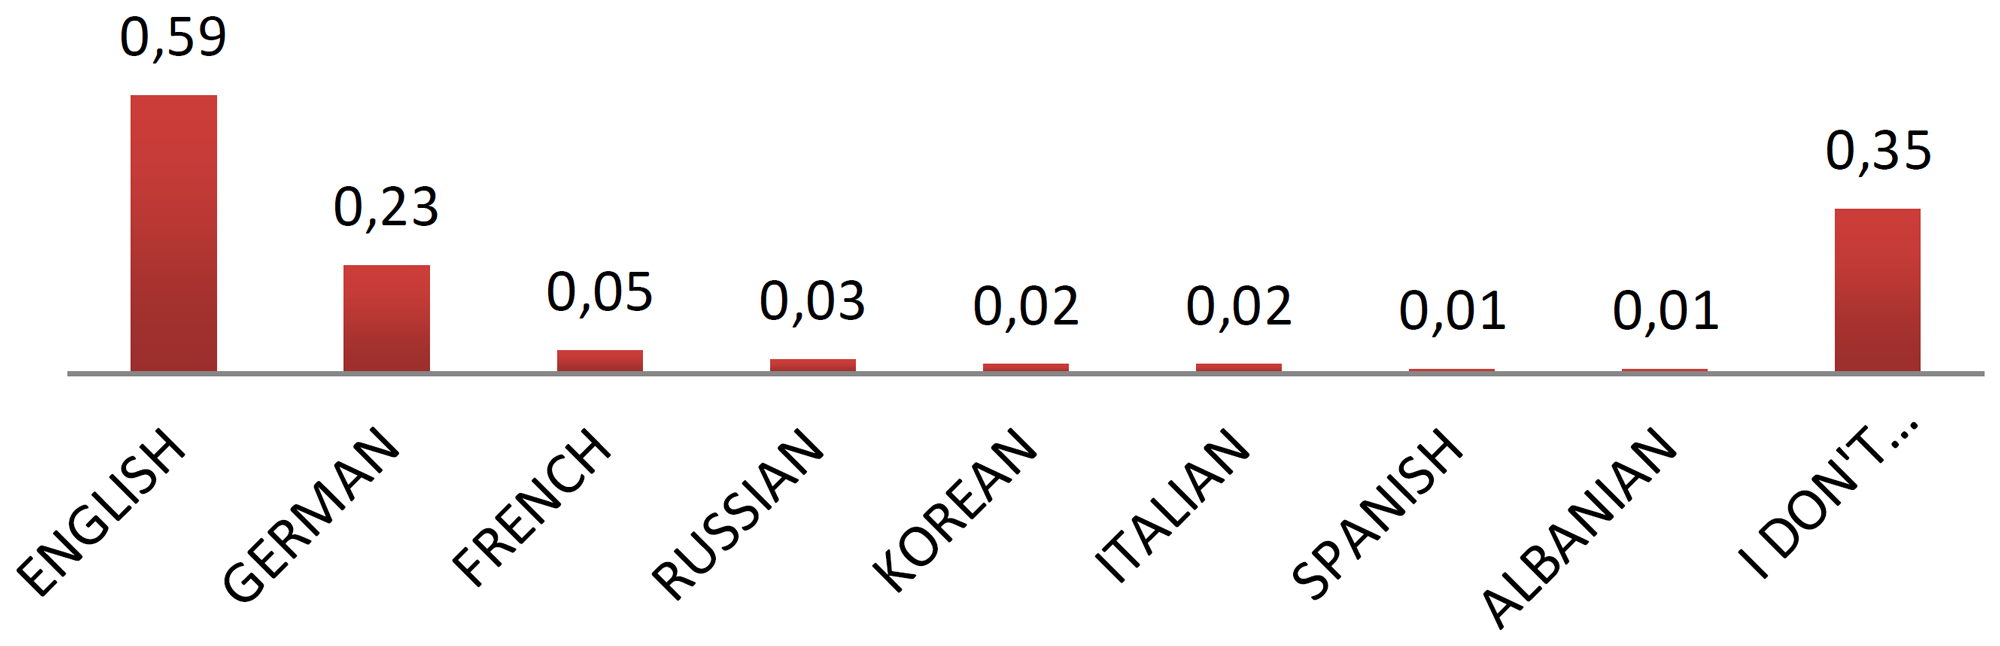 Figure 1. The percentages of the foreign languages that the participants speak, and of the participants who couldn't speak any foreign language.